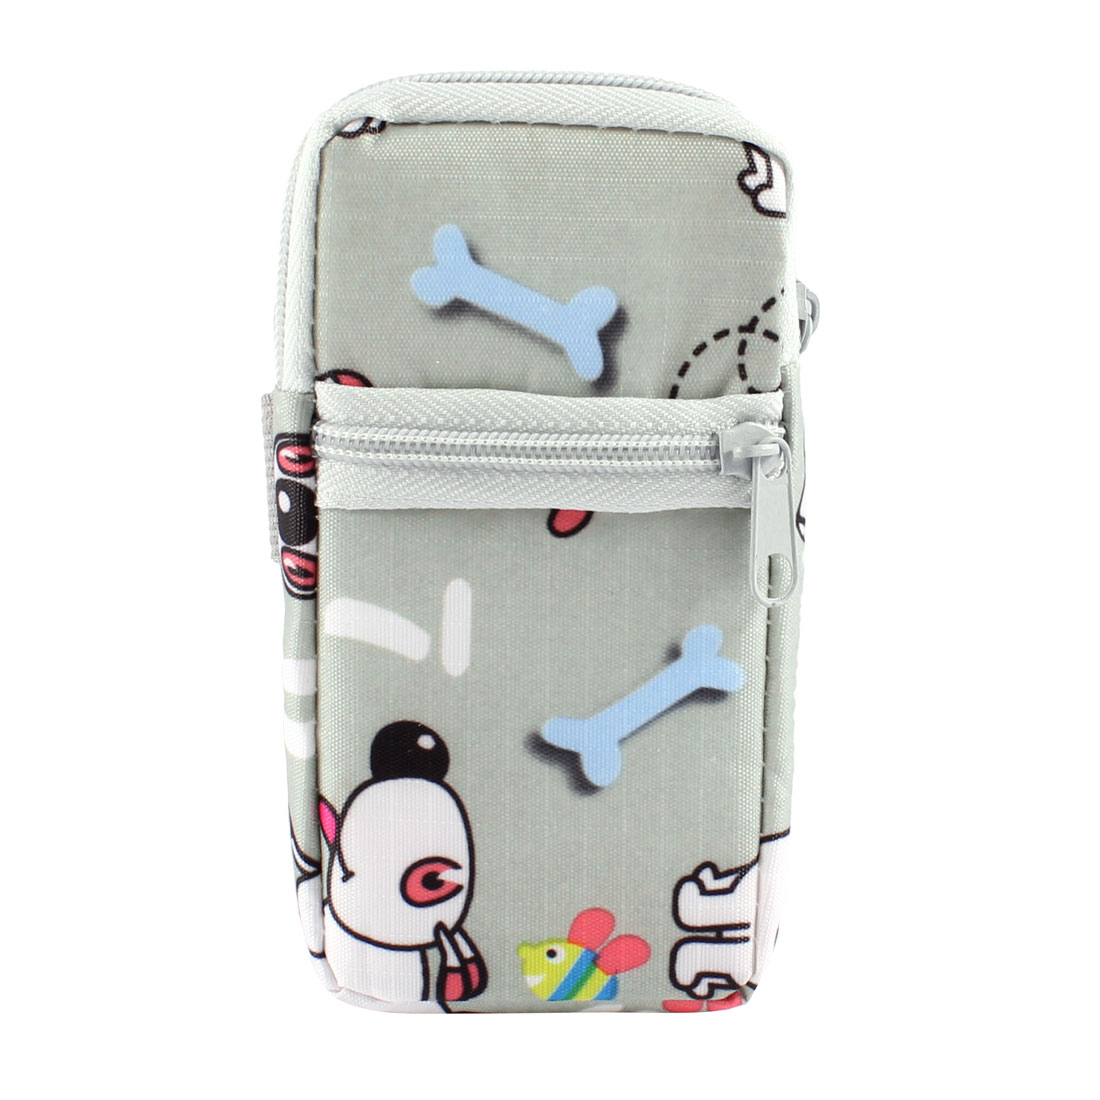 Unique Bargains Gray White Cartoon Printed Dual Compartments Zip Up Phone Wrist Bag Holder